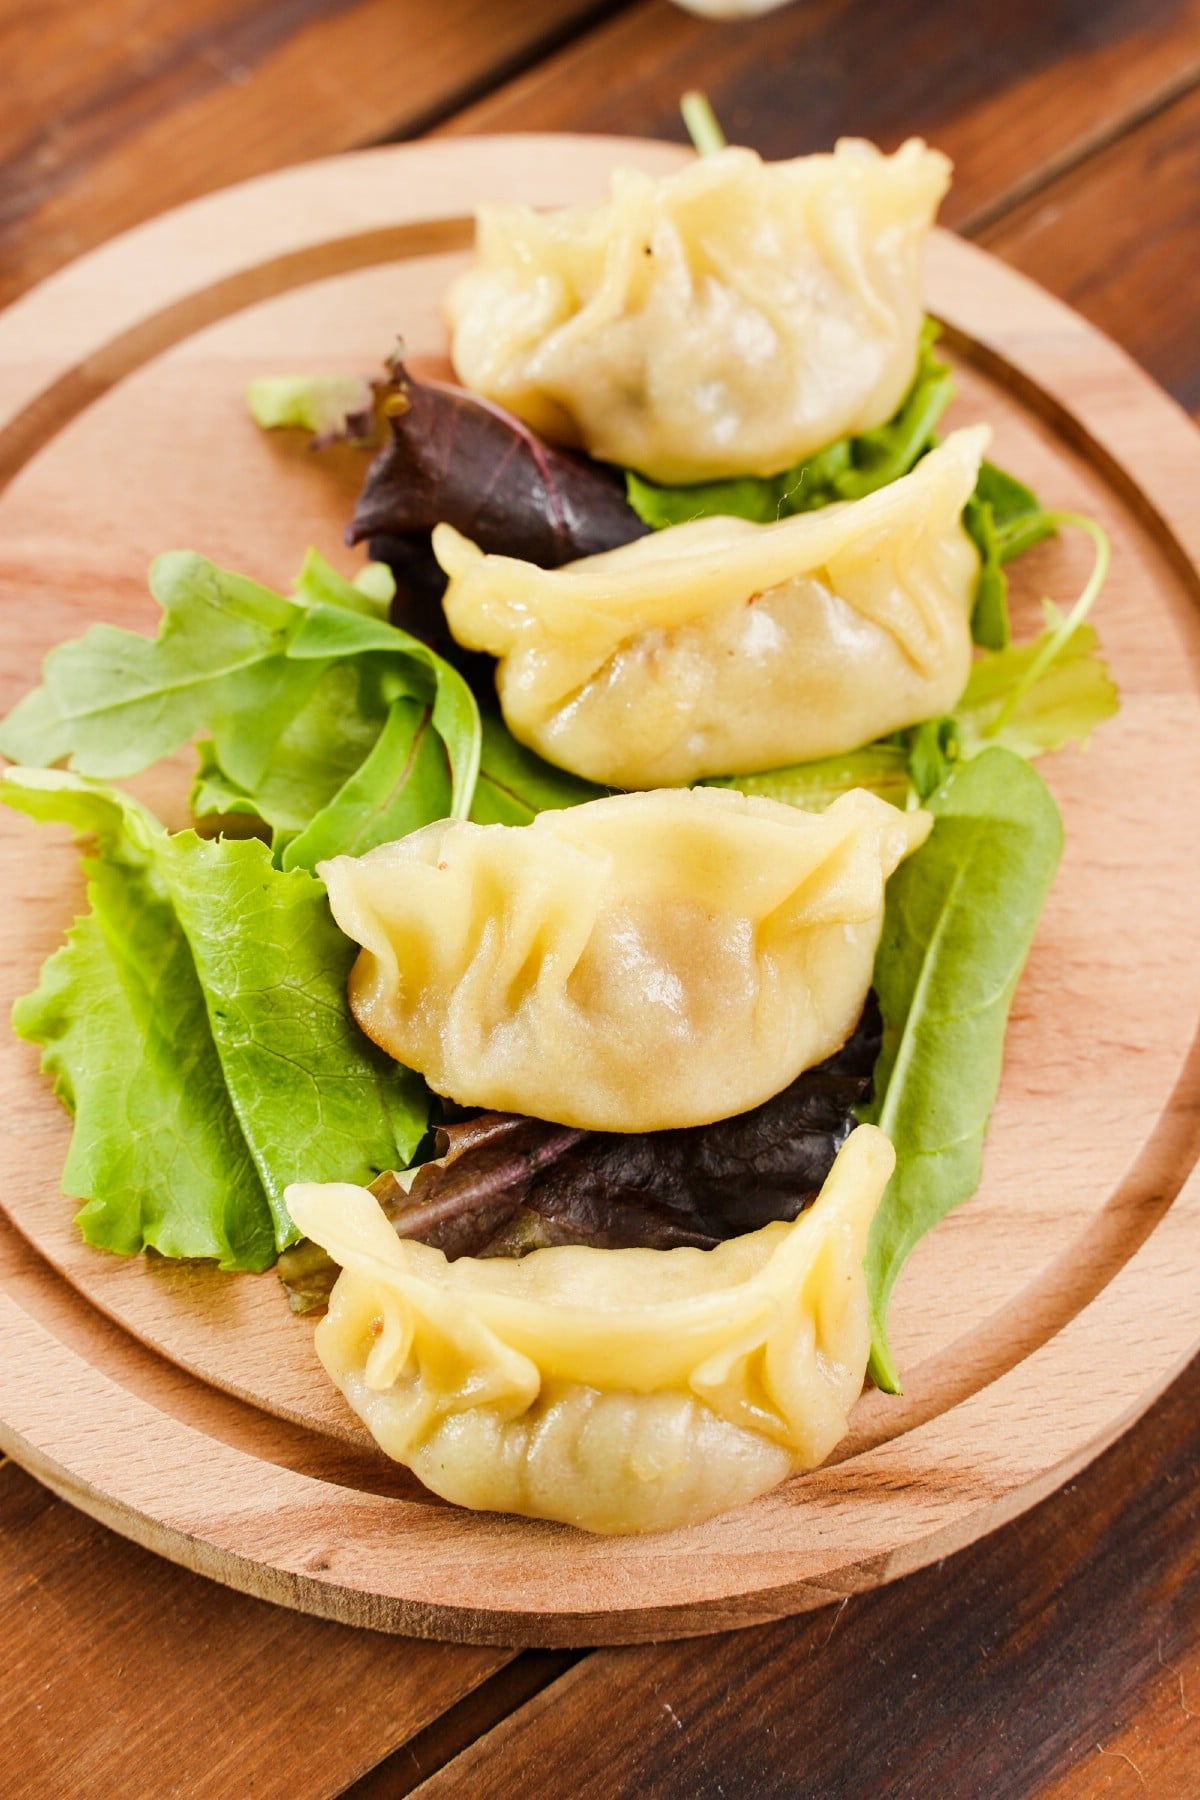 Image from overhead of dumplings on round board sitting on table